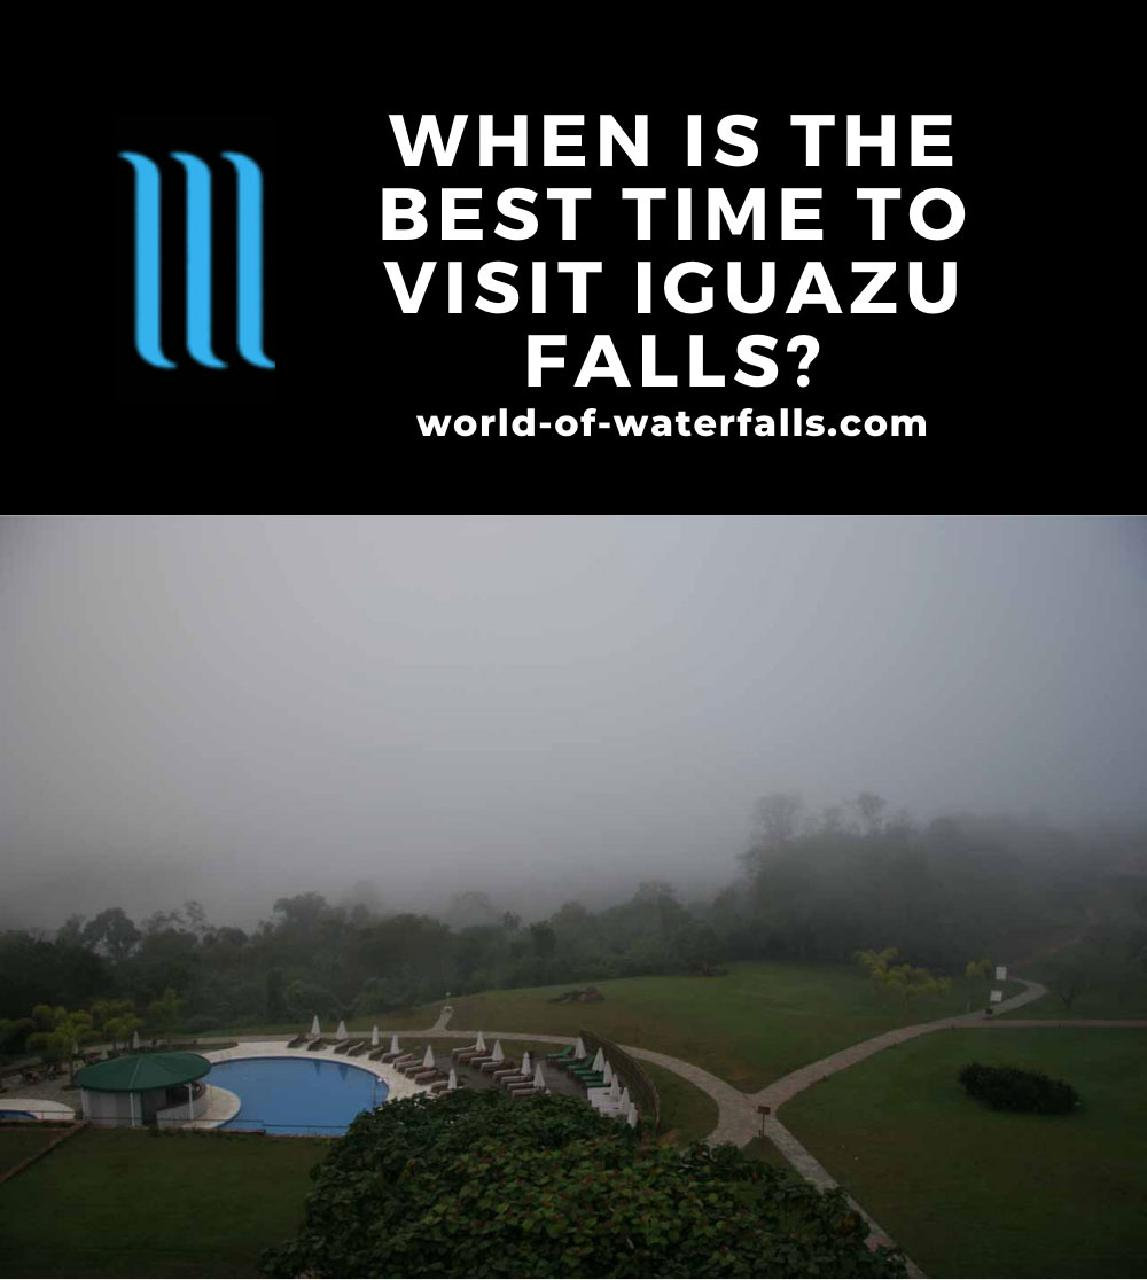 When is the Best Time to Visit Iguazu Falls?